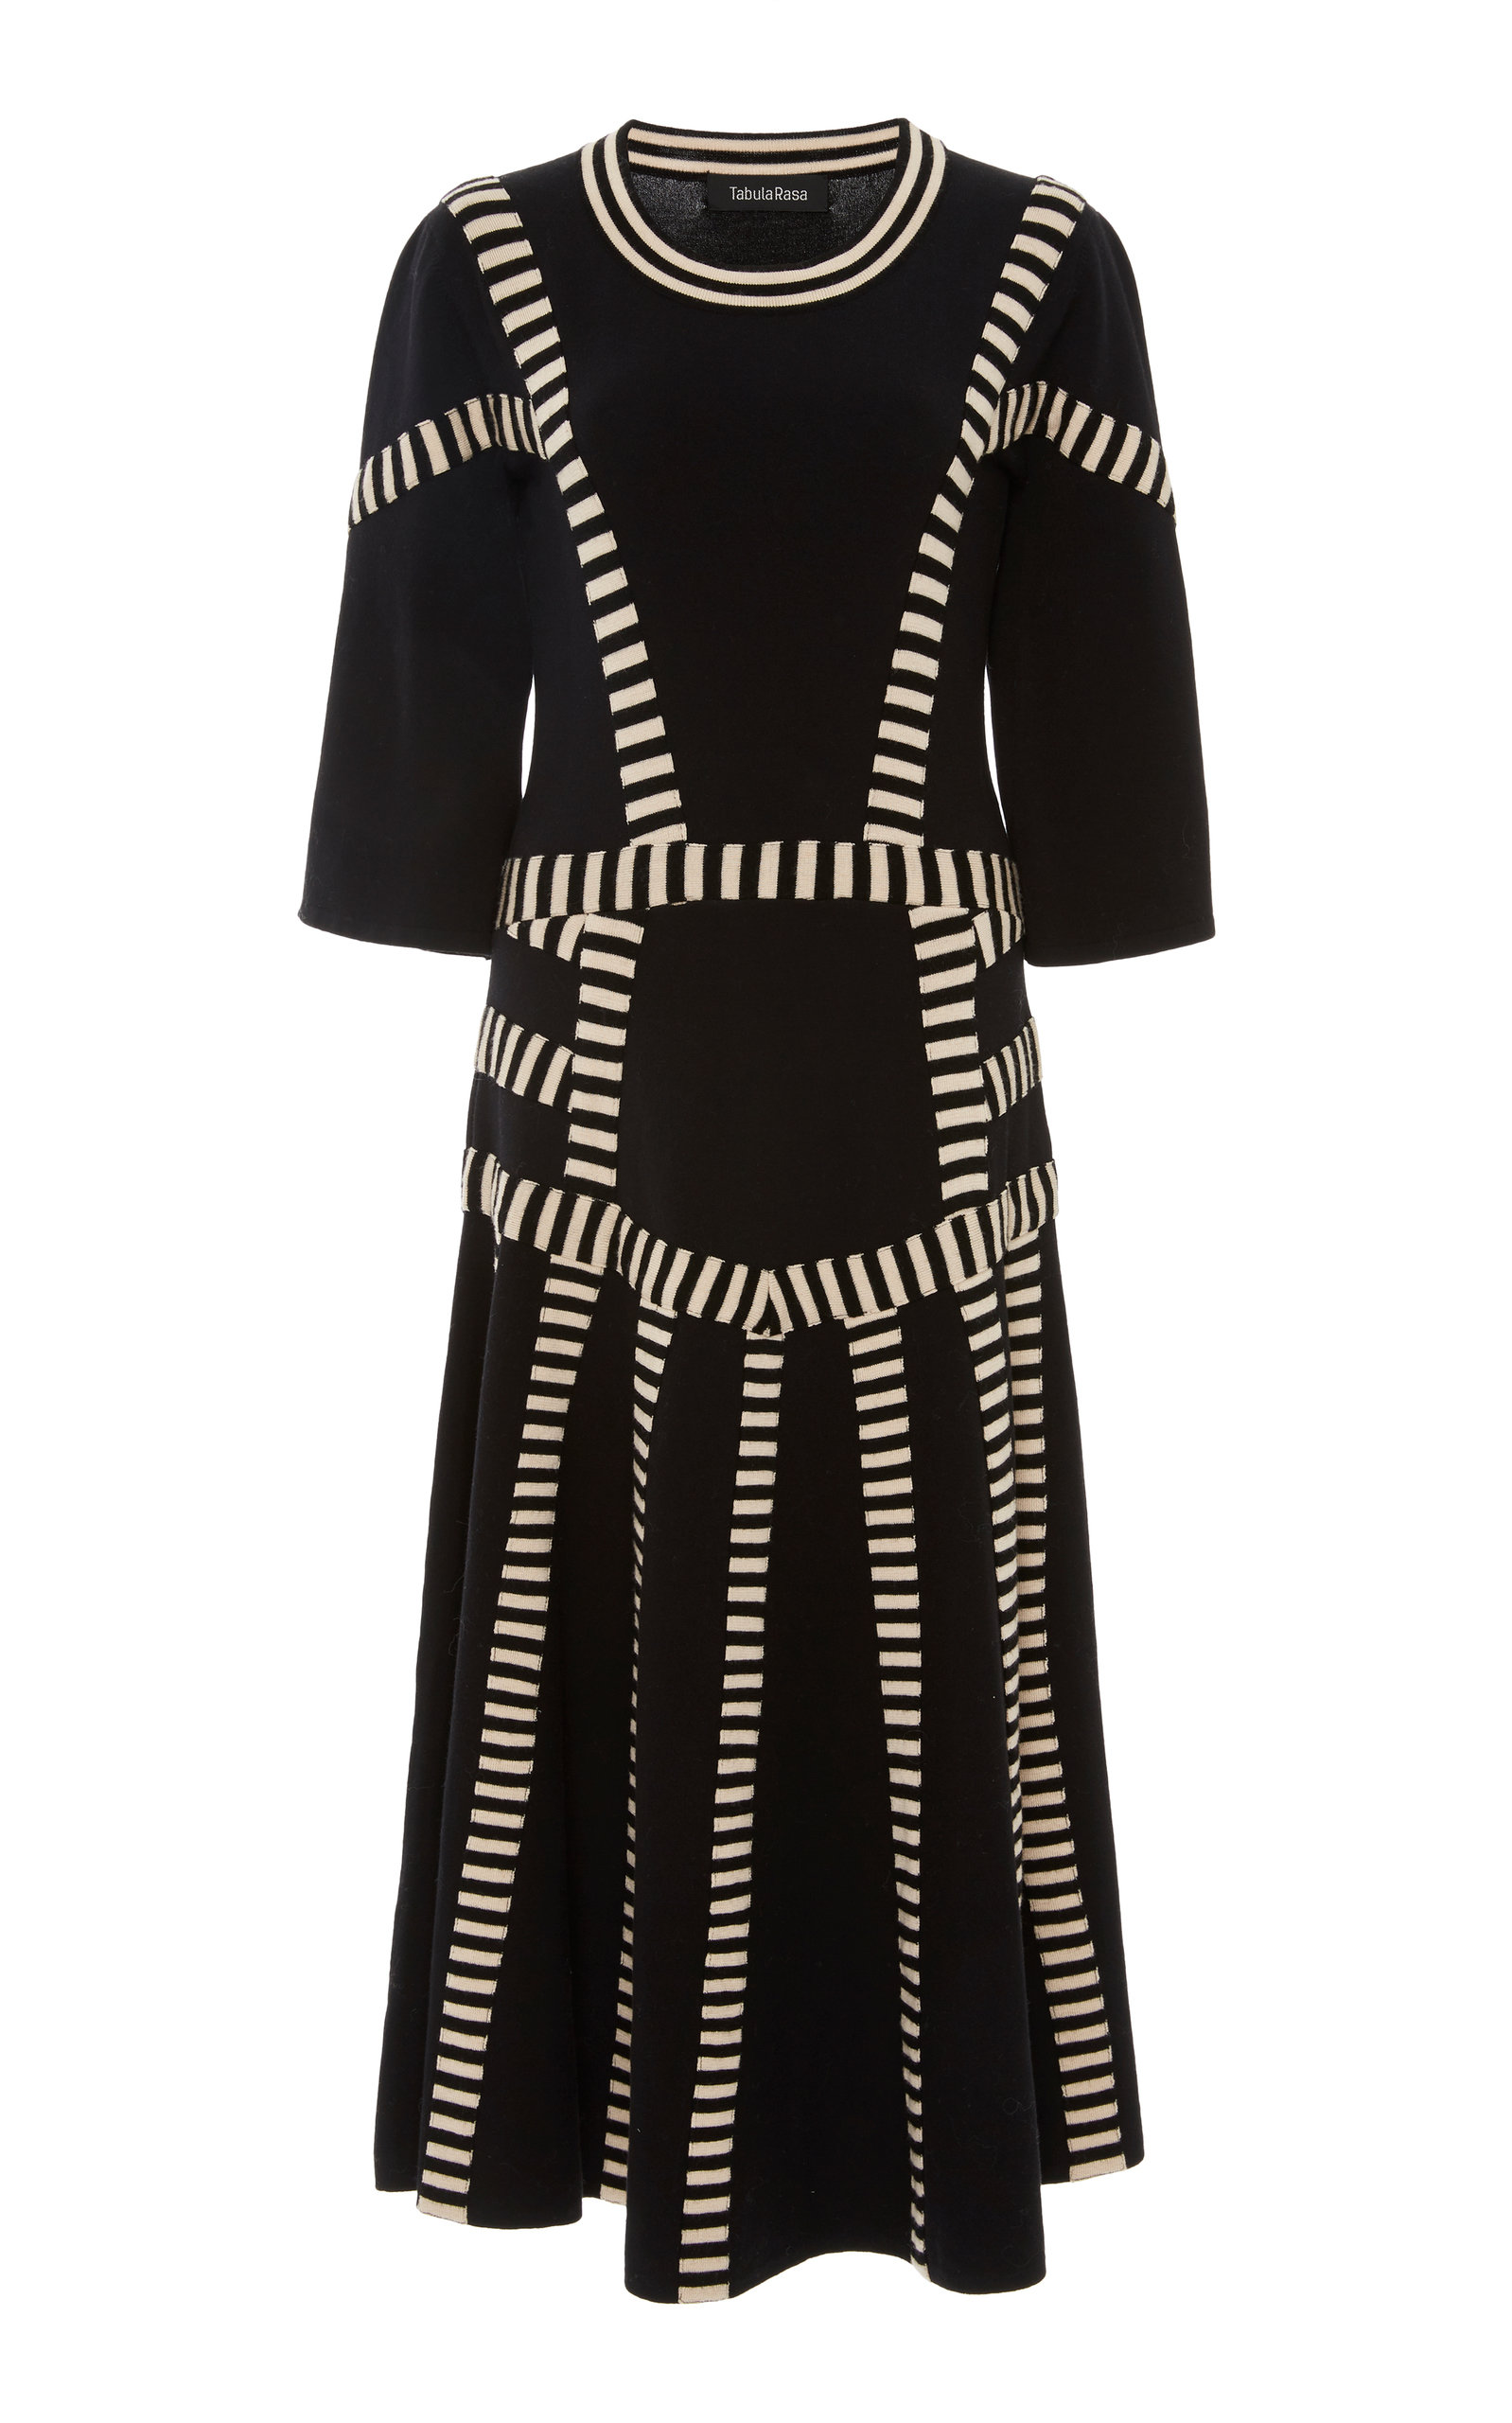 Modesens Tabula Stripe Litho Rasa Black Dress In gO1grY